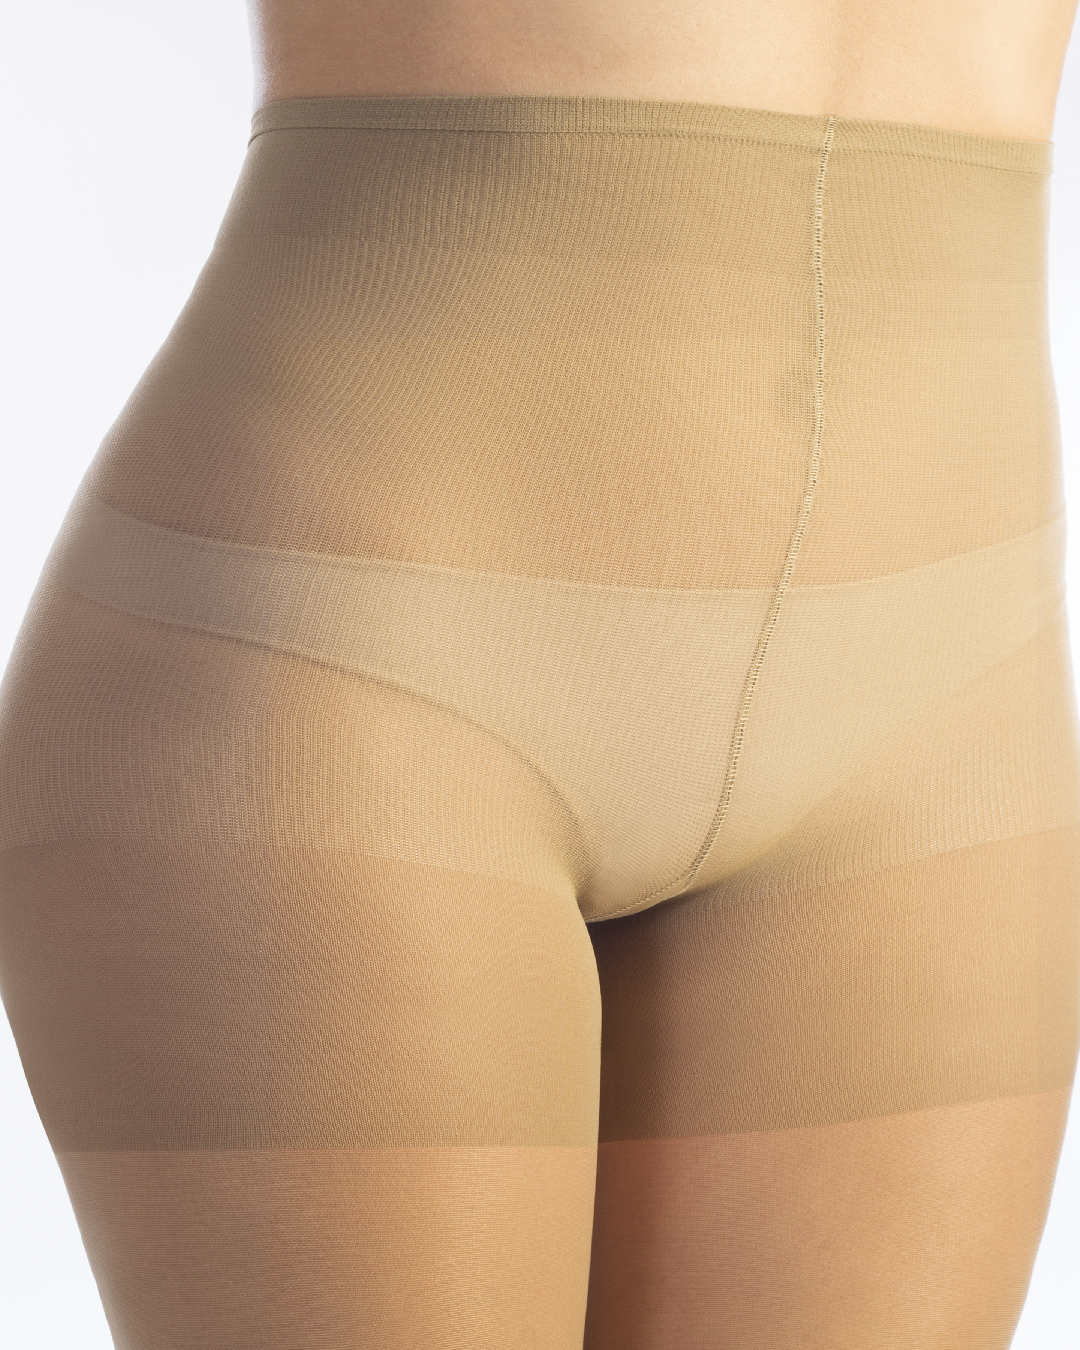 personalsize-collant-caress_20-prd-09.jpg